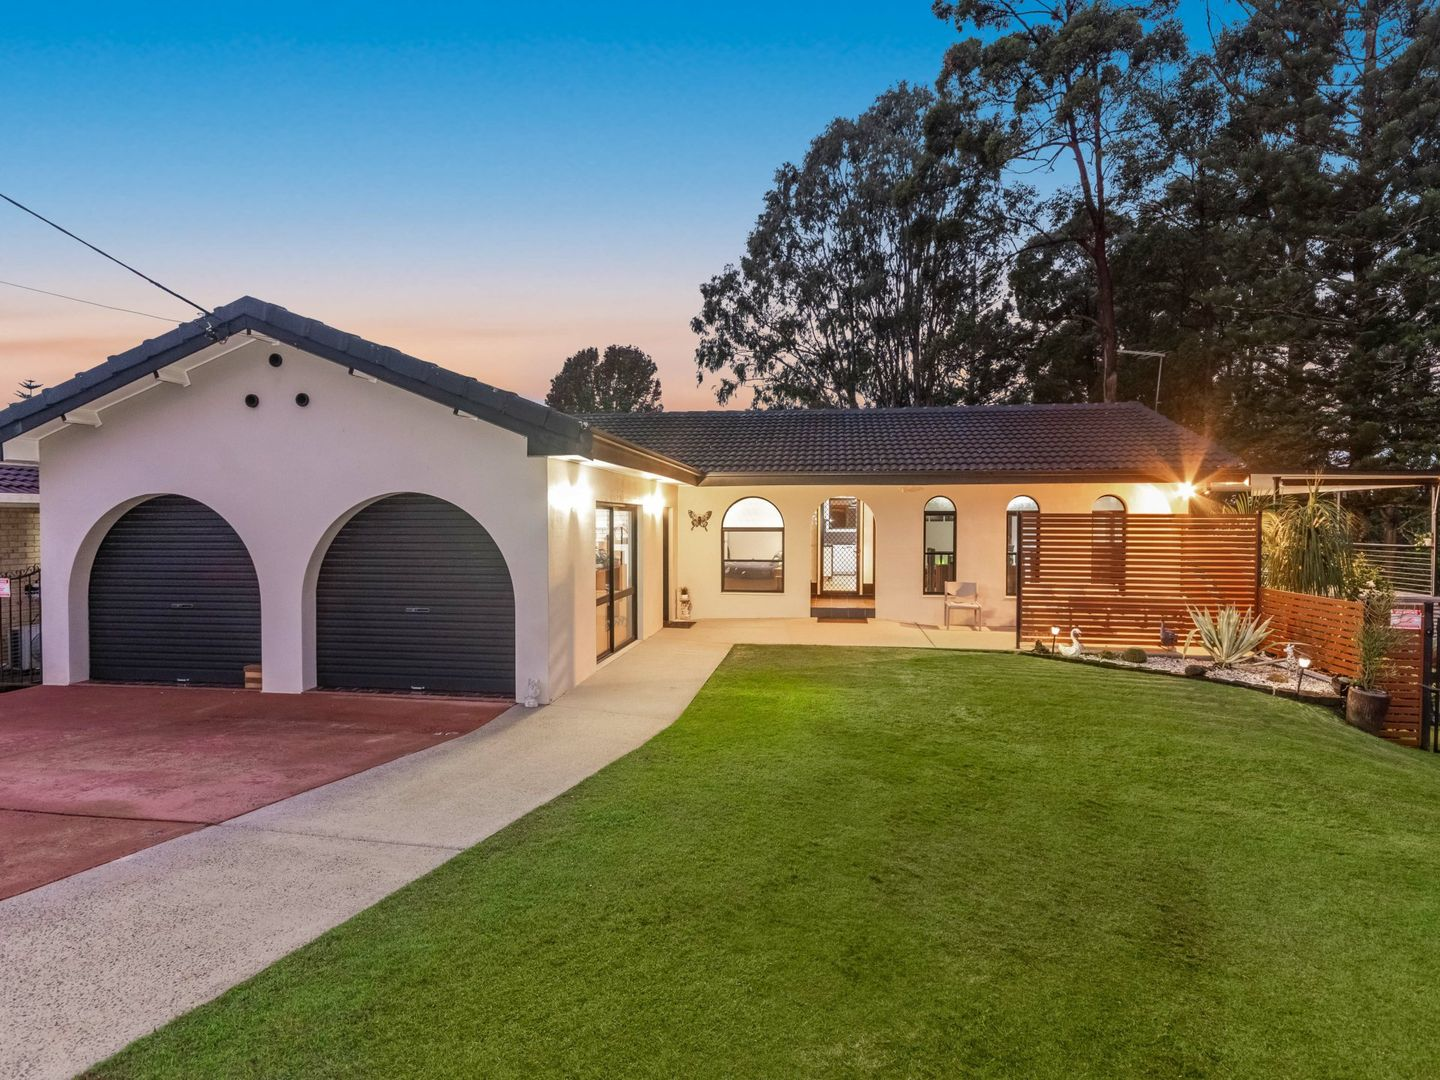 15 Darcy Drive, Goonellabah NSW 2480 | Domain